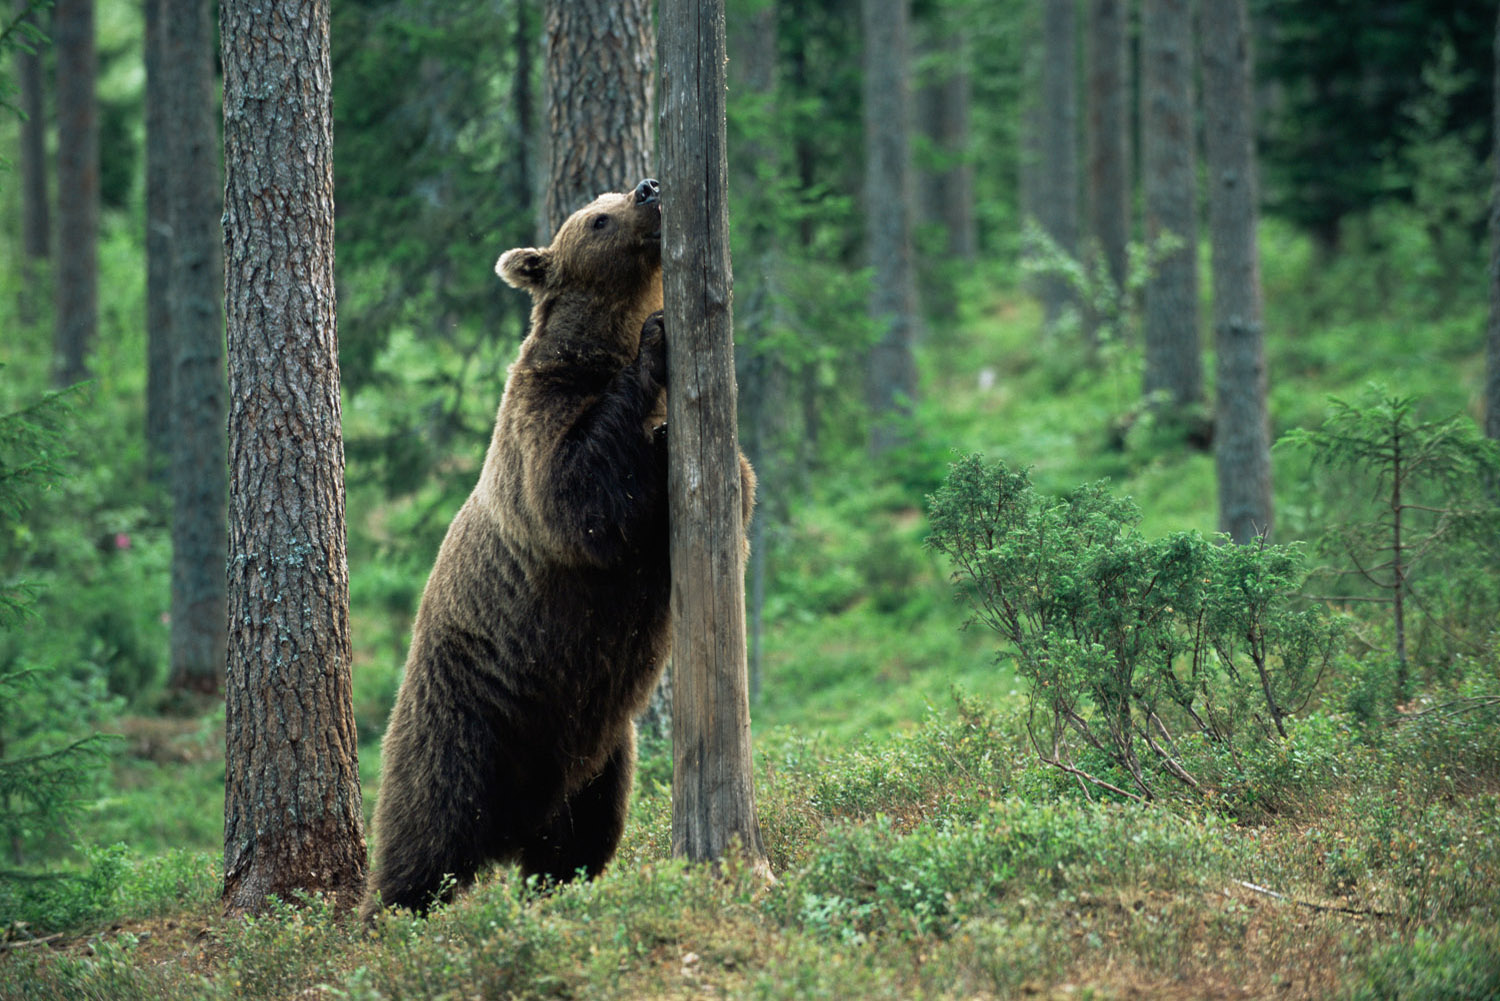 Brown bear inspecting tree trunk, Suomussalmi, Finland